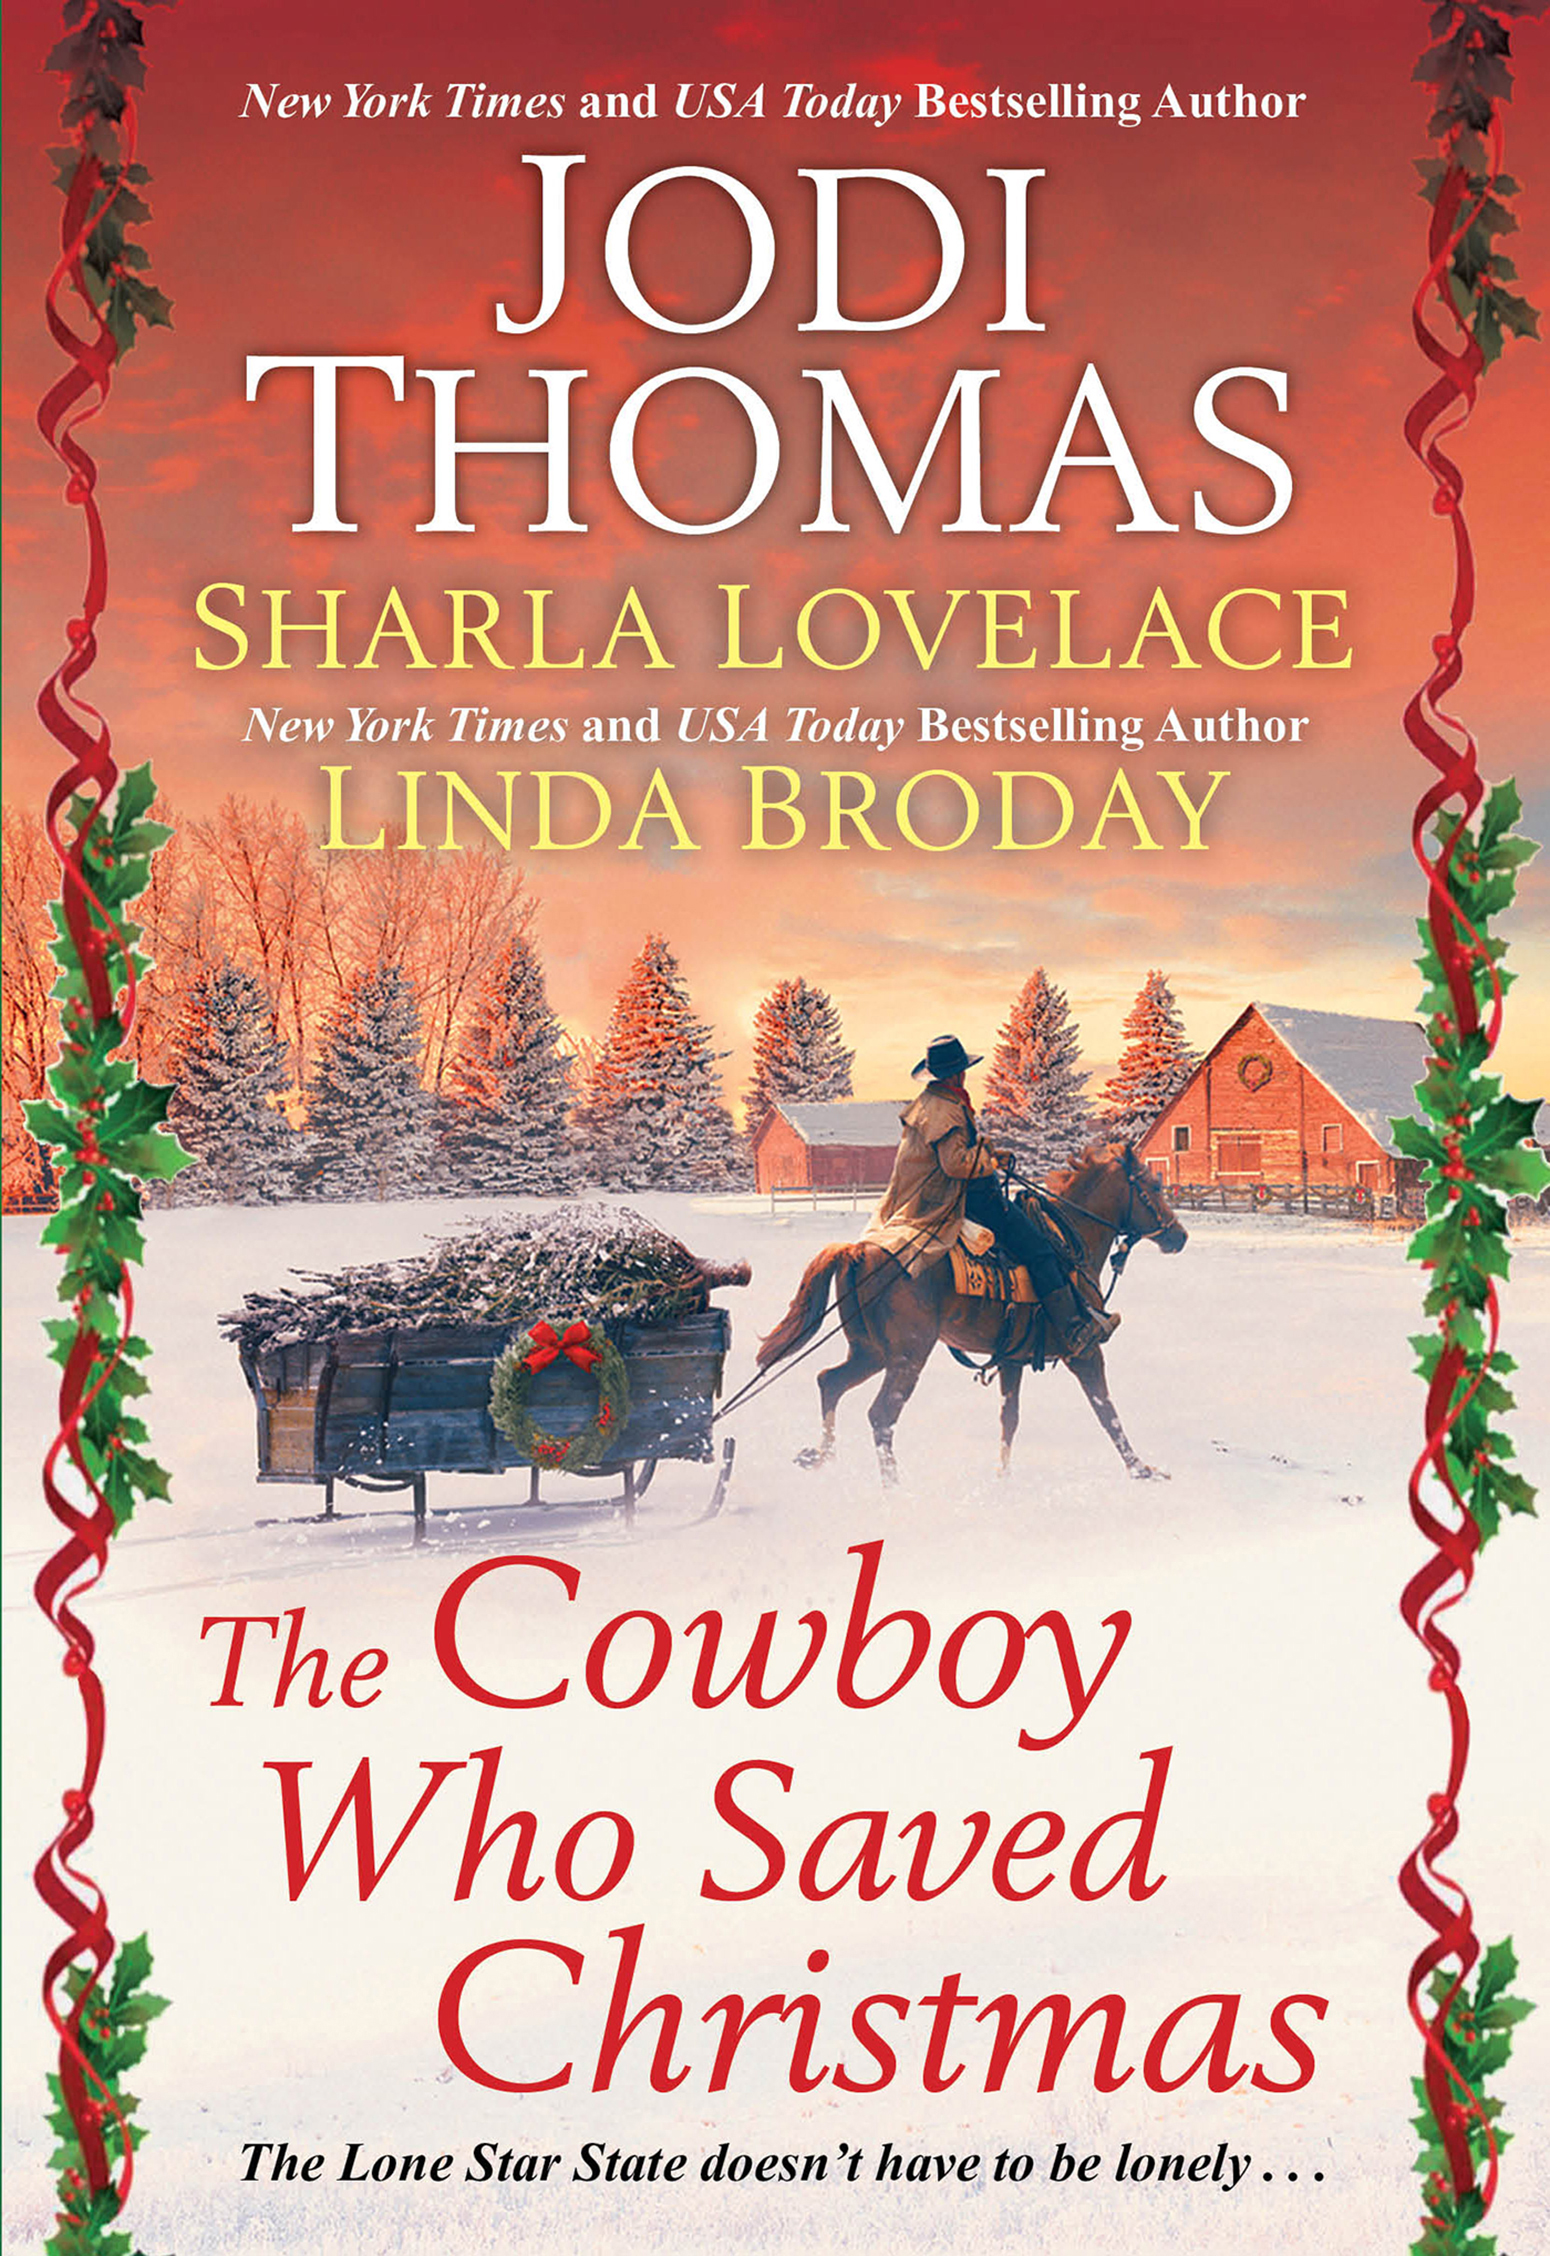 The Cowboy Who Saved Christmas